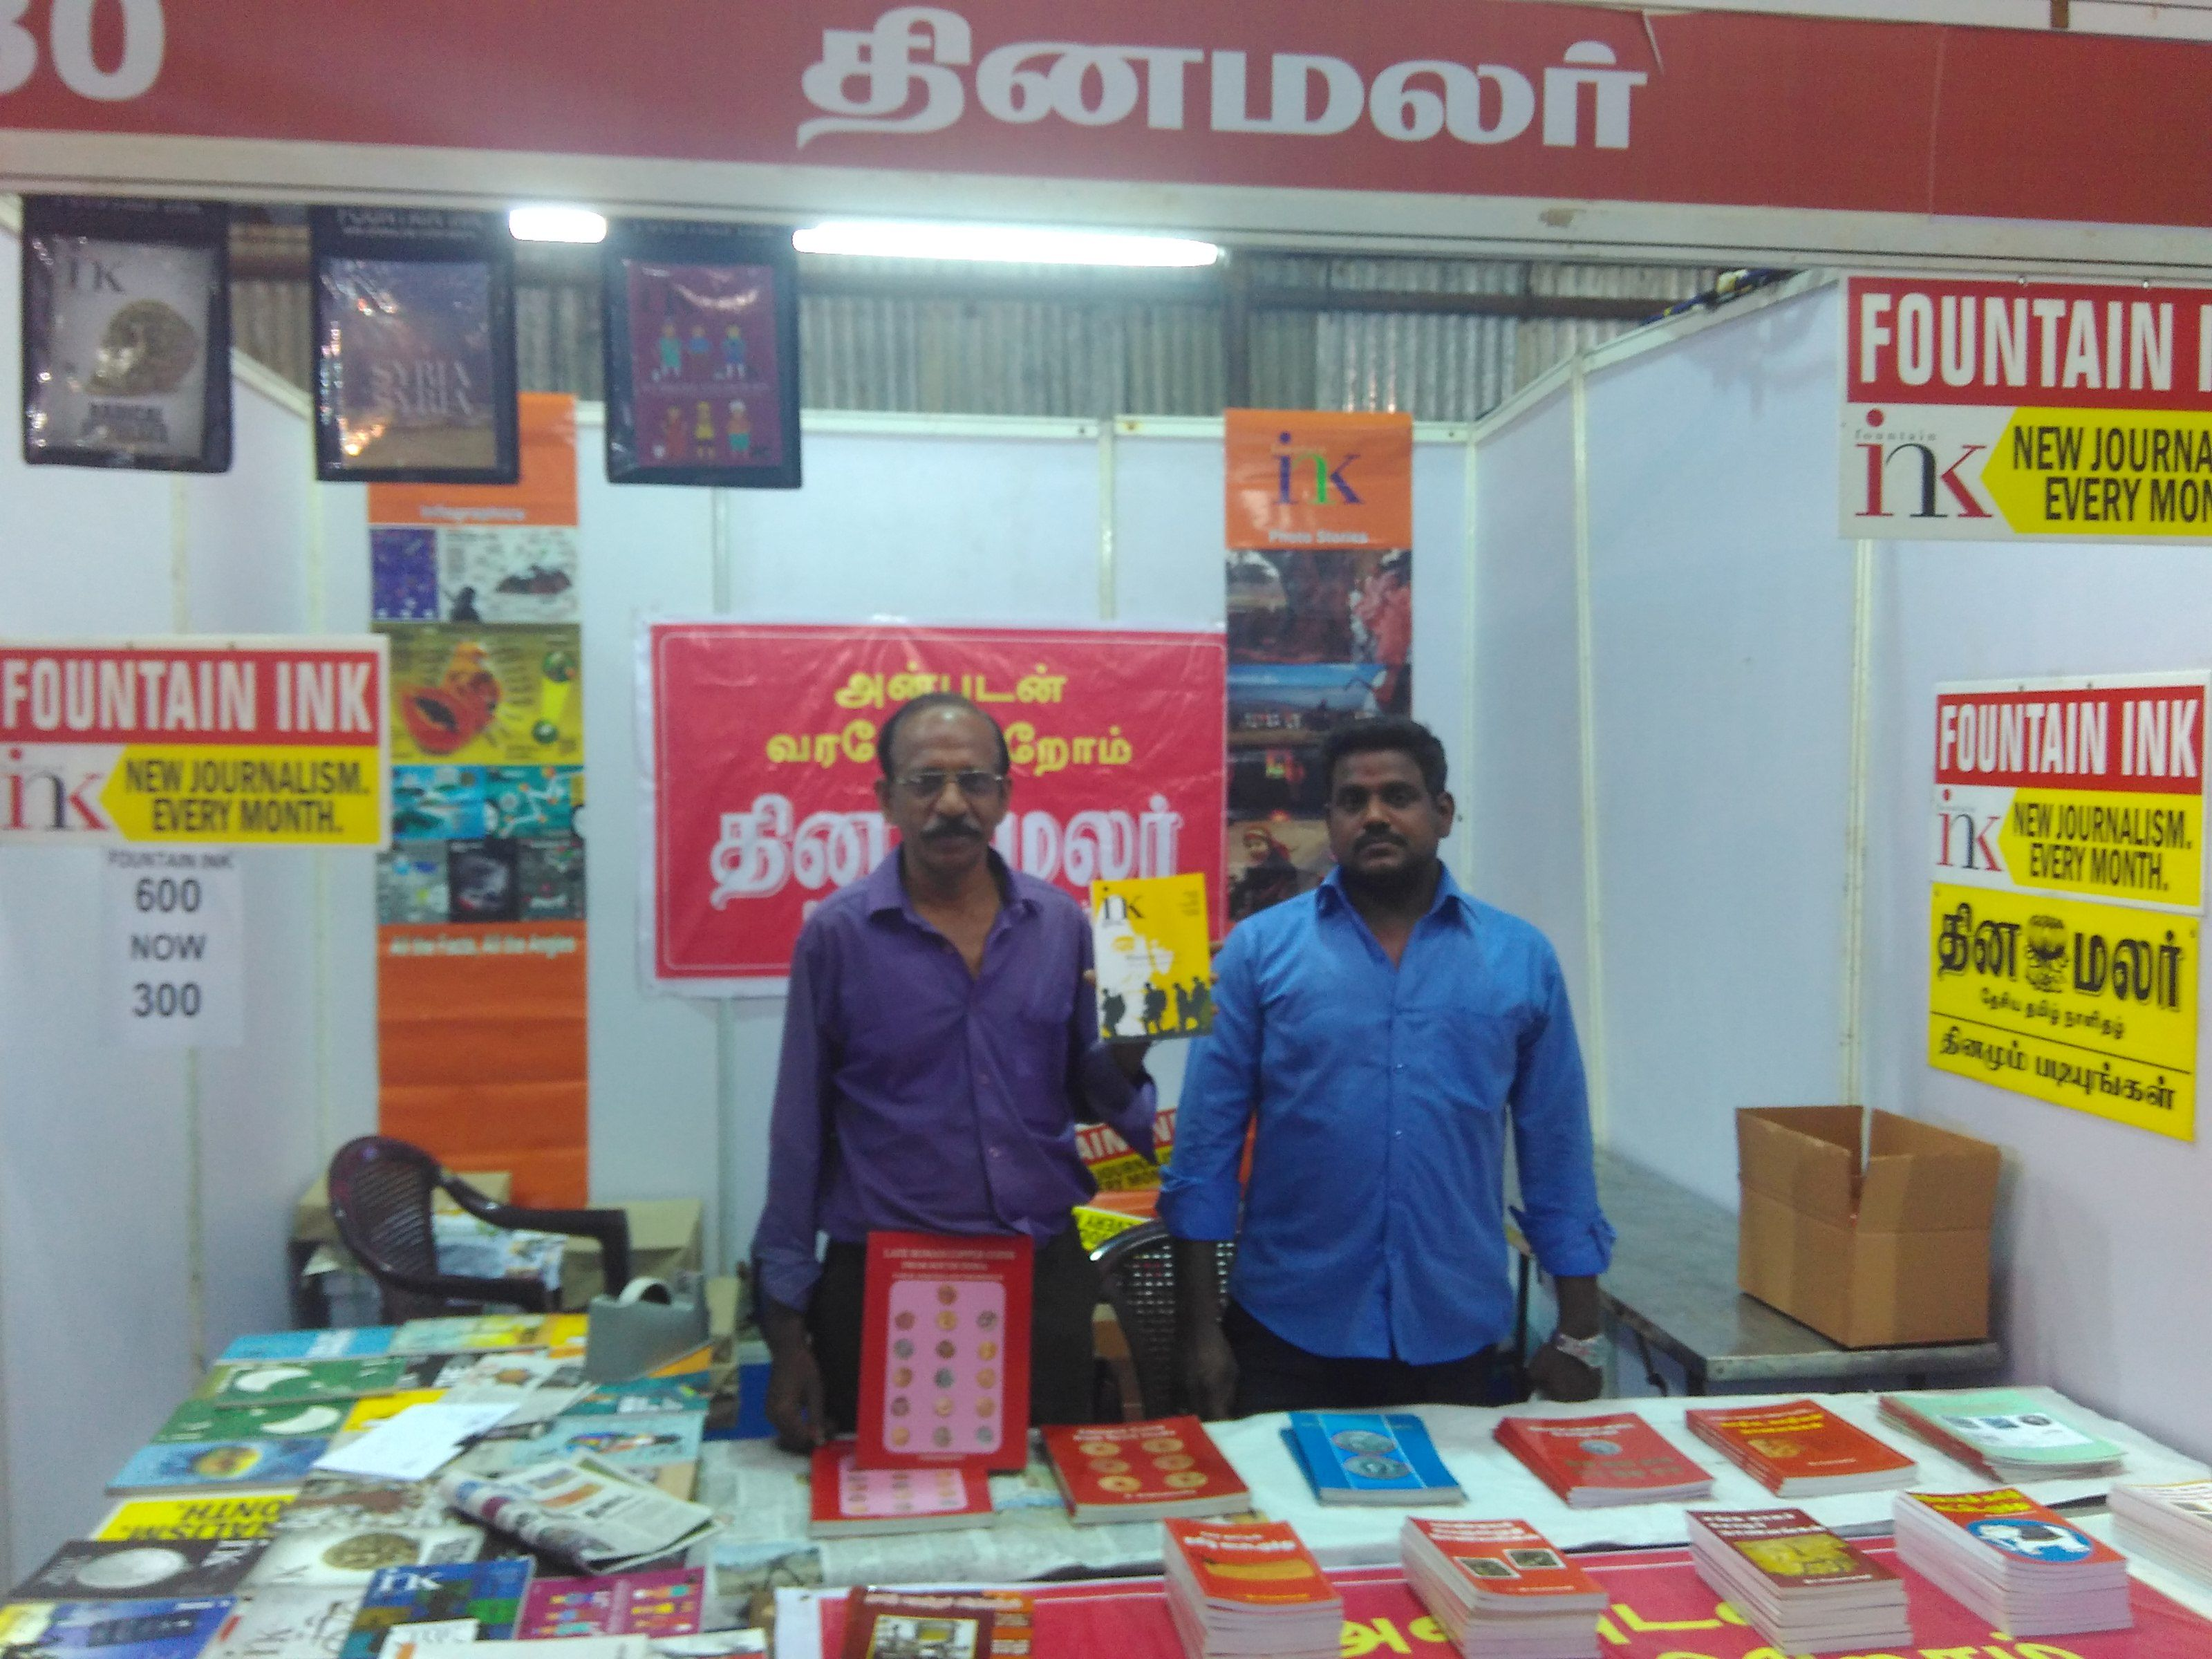 Chennai book fair 2016 - Dina Malar Fountain Ink Magazine